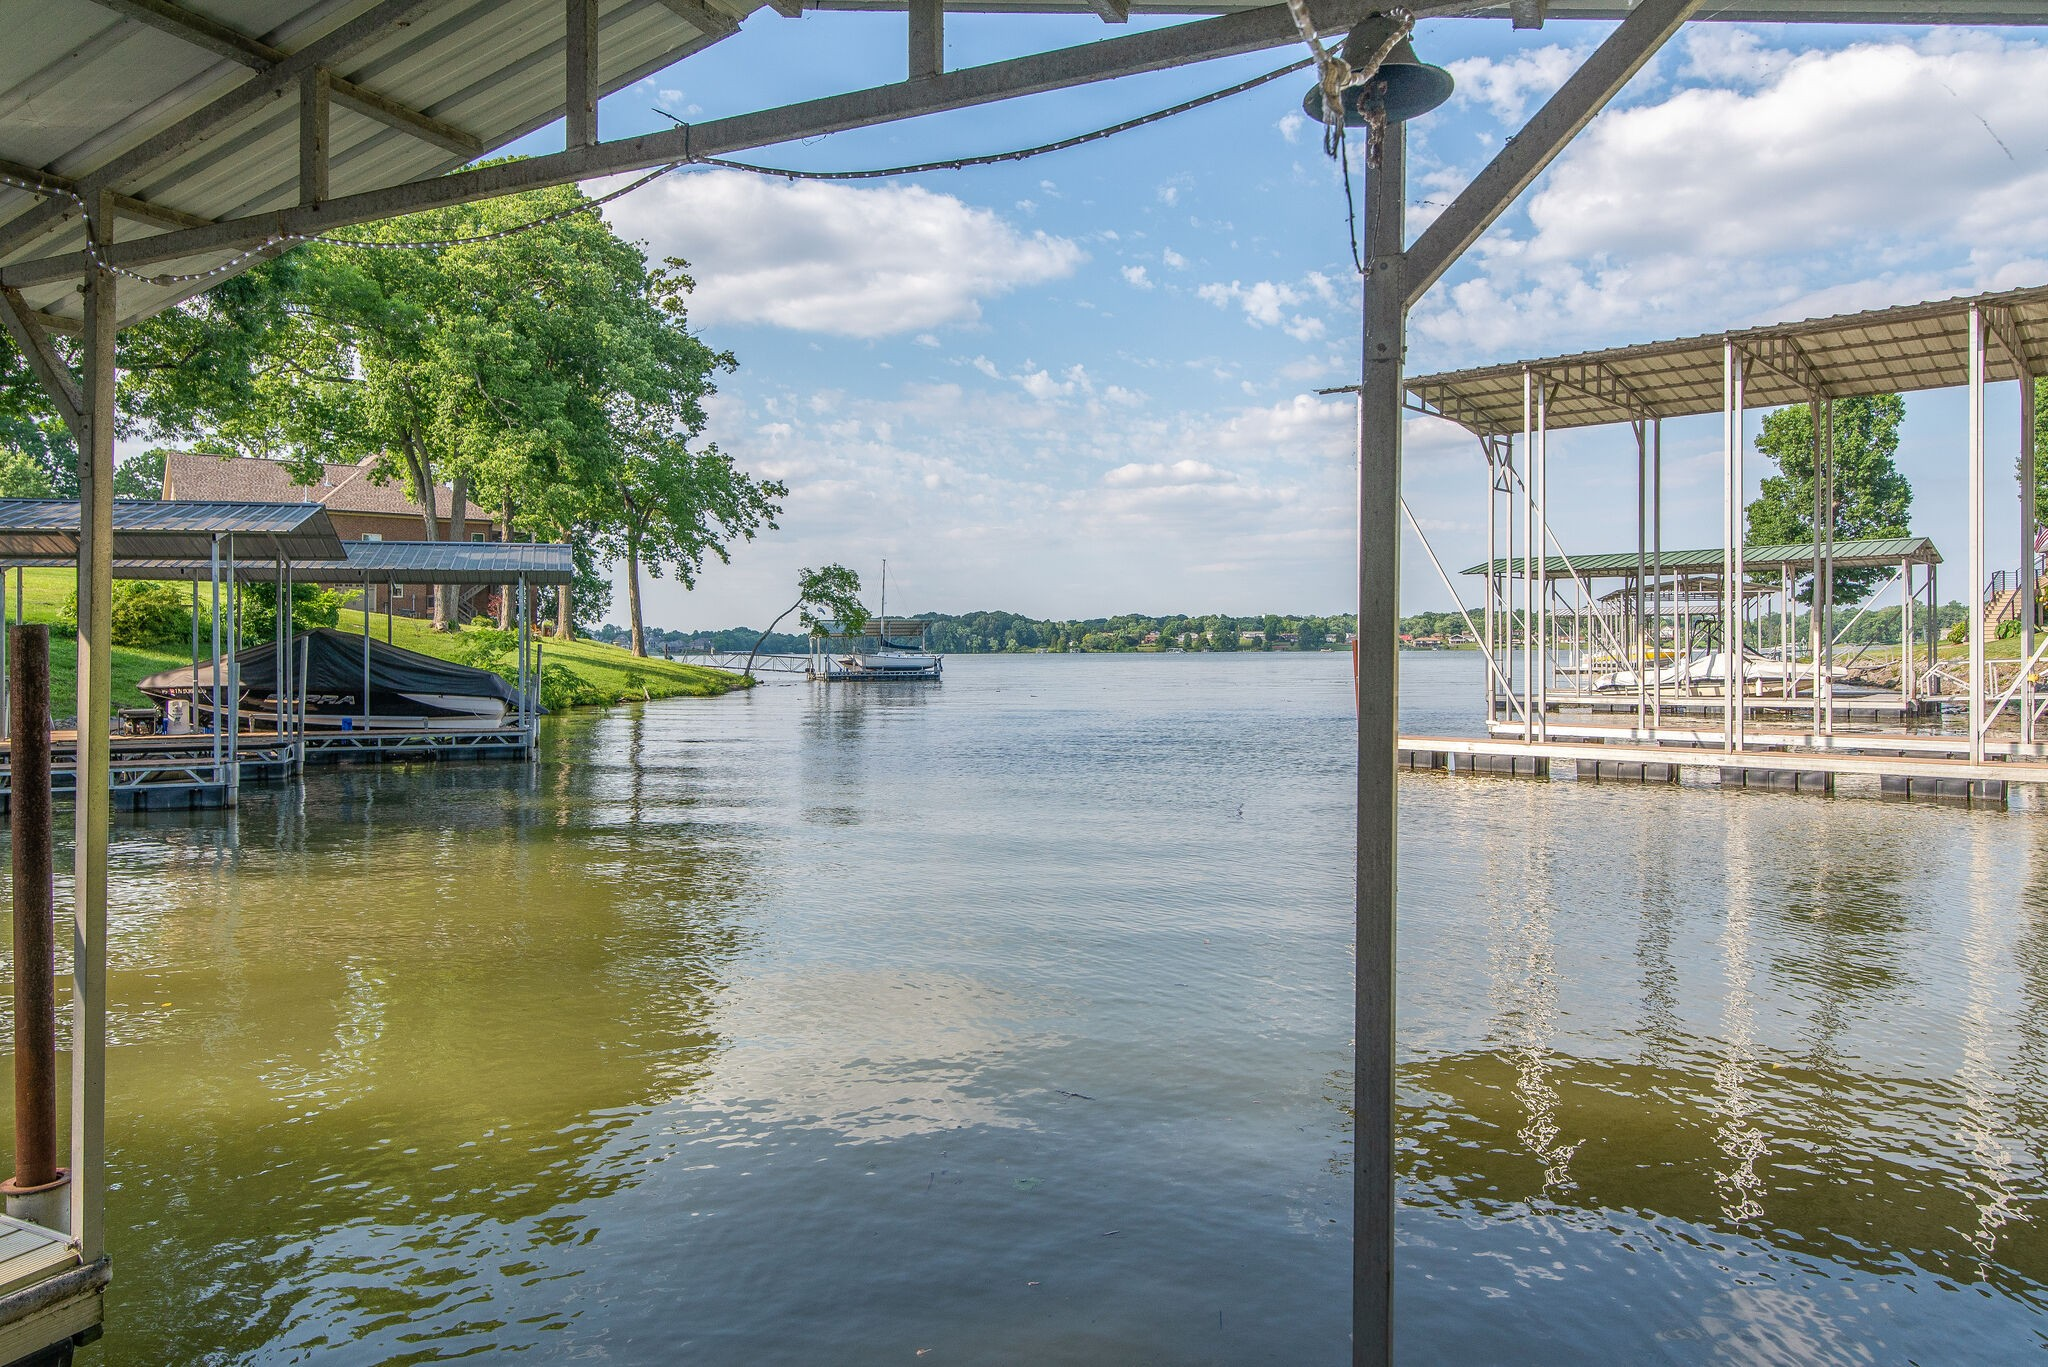 FINANCING FELL THRU - BACK ON MARKET!  FANTASTIC LAKE HOME W/ COVERED DOCK, BOAT LIFT & JET SKI HYDROPORT. Walk out to your own personal dock & hop on your boat/jet ski for a day on the lake. Step out of your master bedroom in the morning to enjoy a cup of coffee. Fabulous floor plan w/ master on the main, two bedroom upstairs & two bedrooms on the lower level both w/ private entrances to the lower deck. All bedrooms have beautiful lake views. Great office space w/ lake view & private entrance